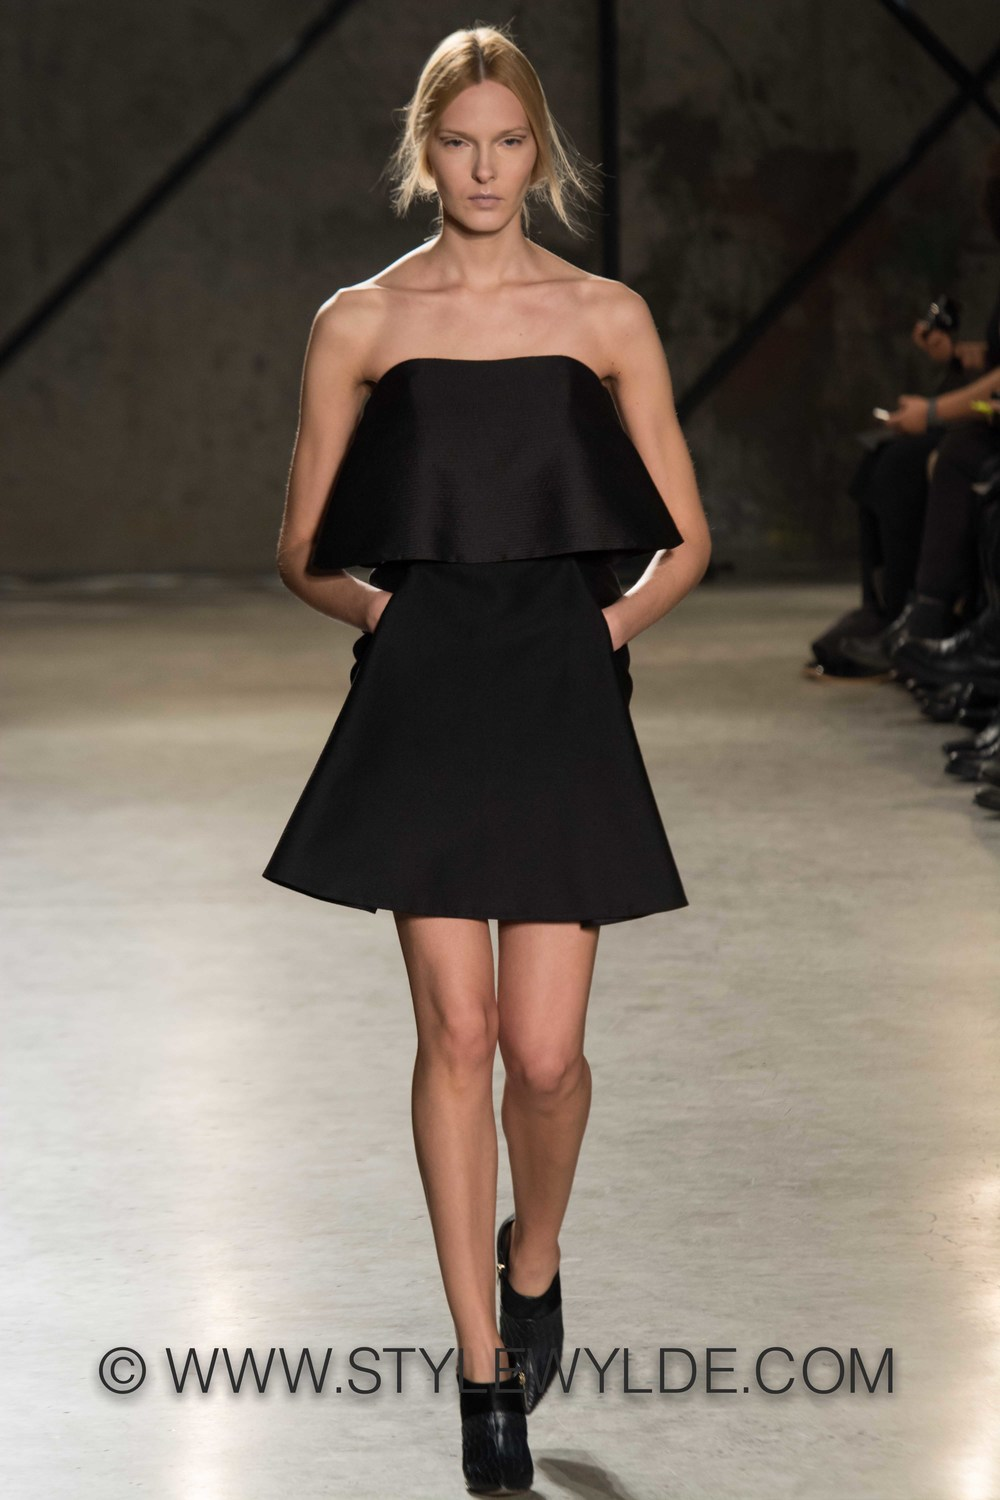 stylewylde_sally_lapointe_fw_2014-16.jpg